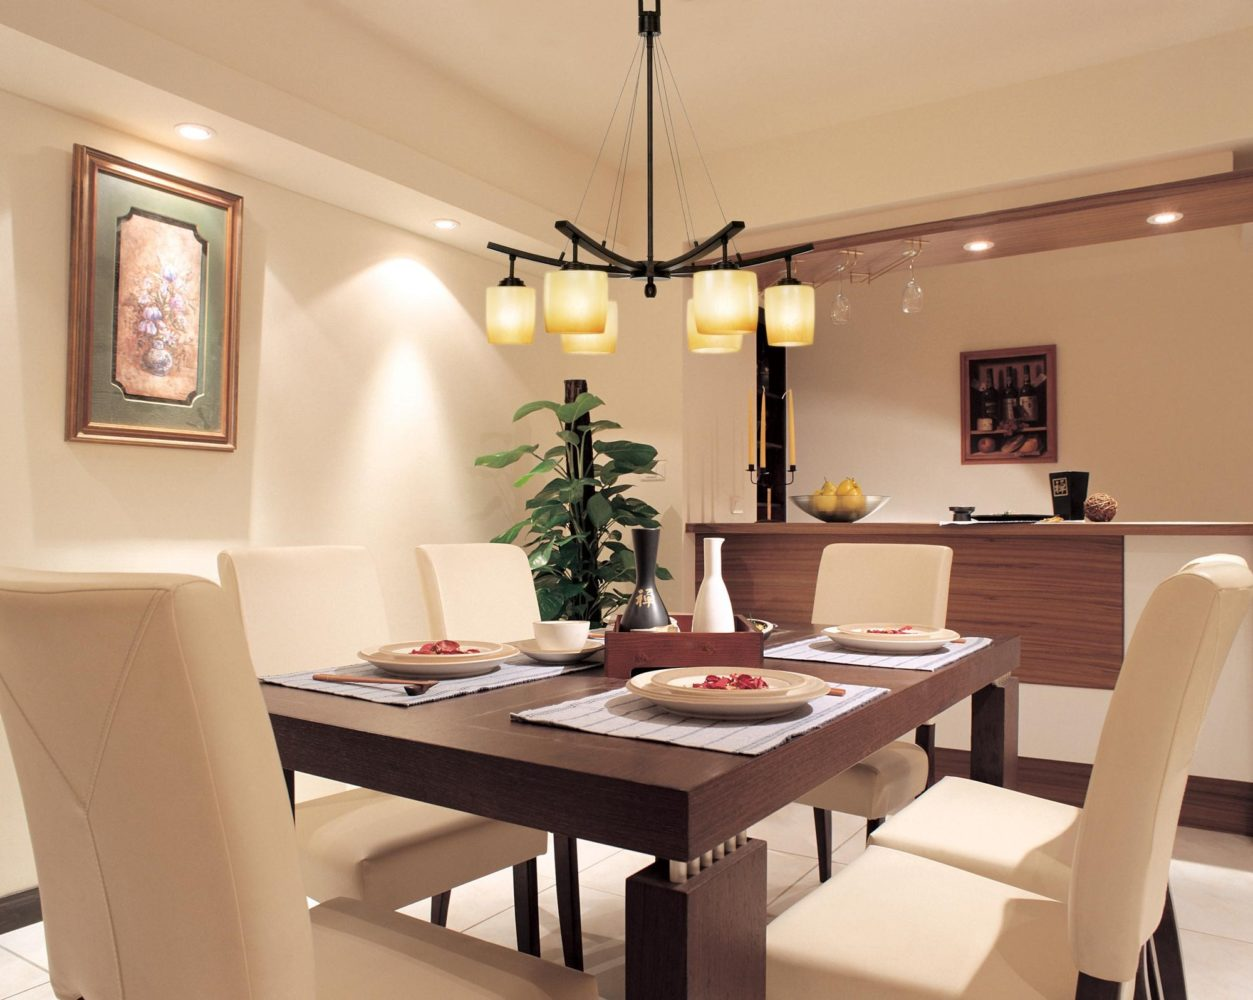 Lights in dining room - Taskmasters